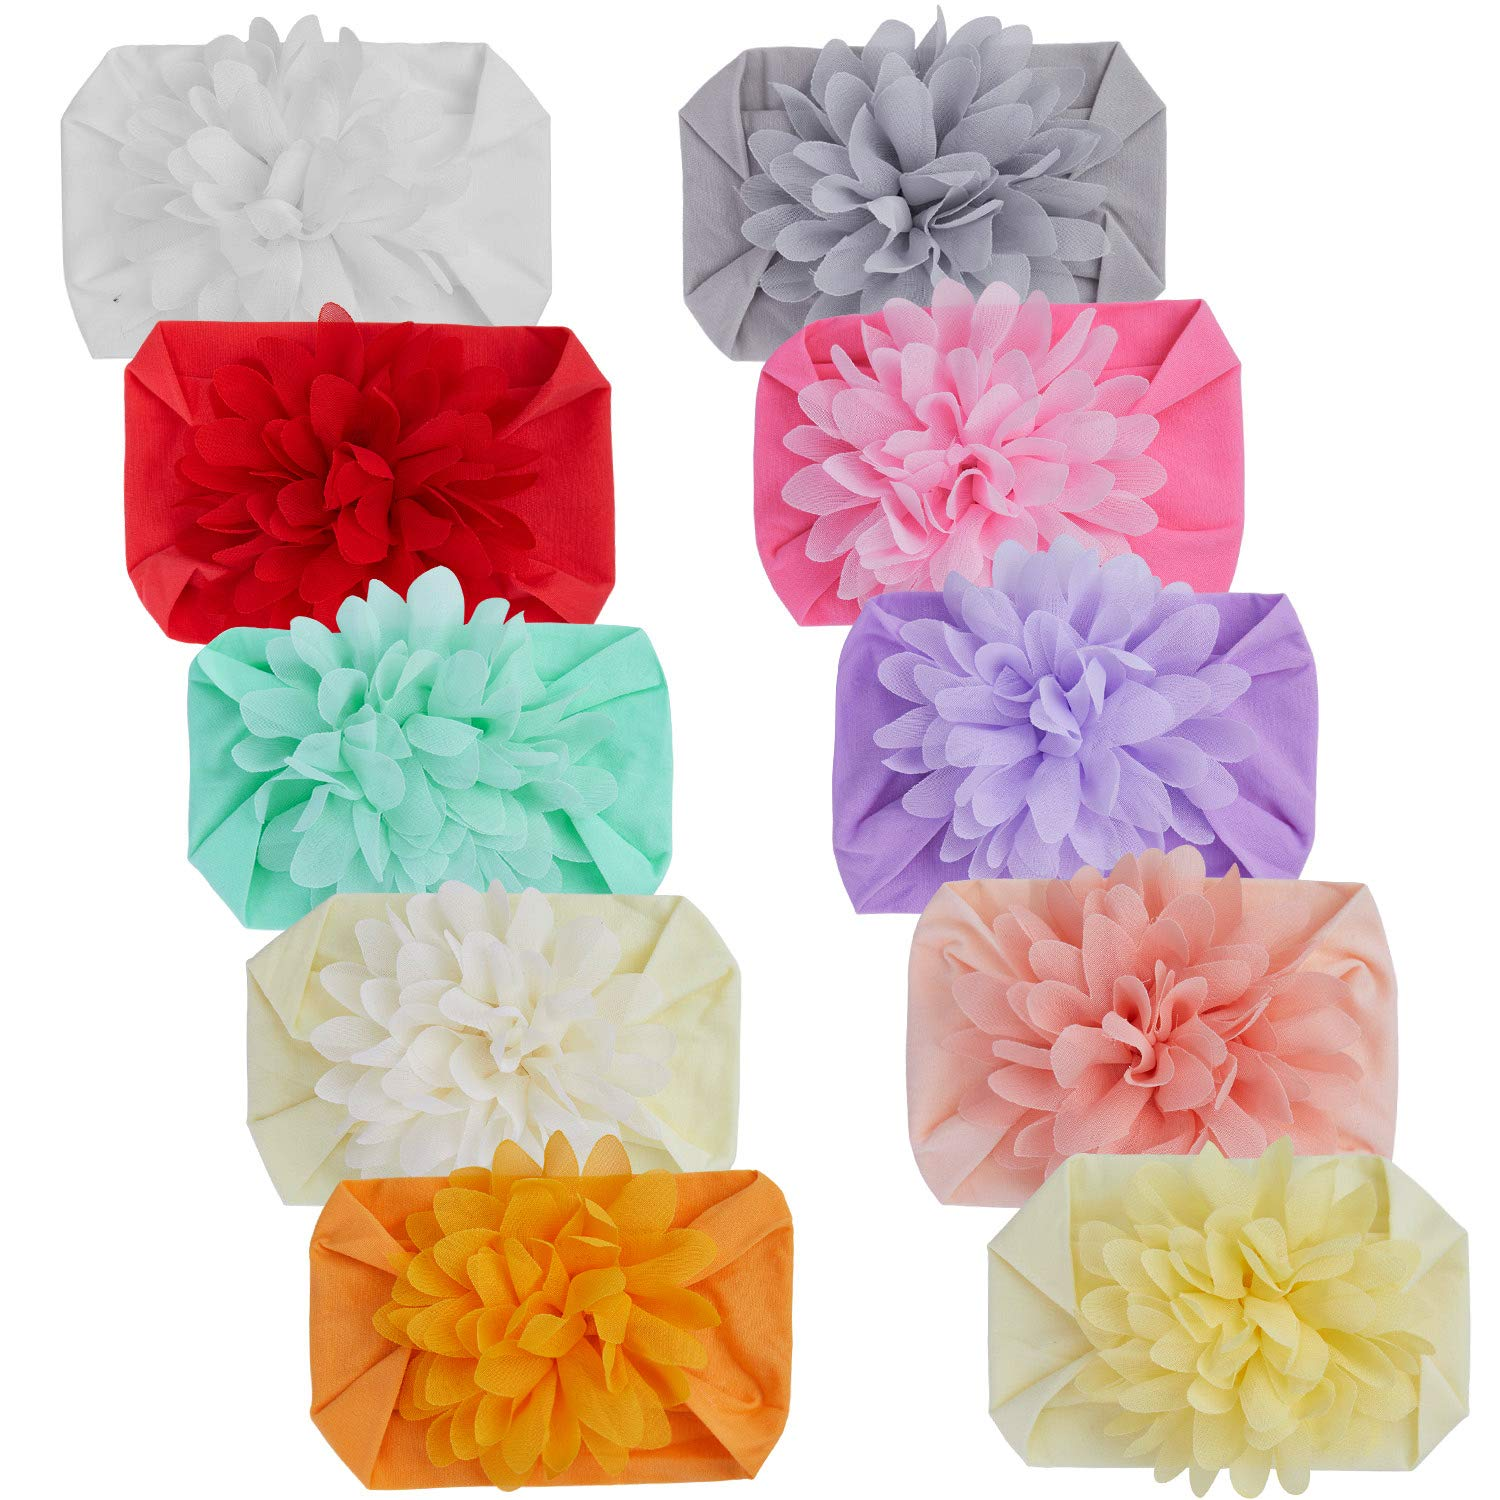 Senbowe 10 Pack Baby Girls Headbands Chiffon Flower Soft Strecth Hair Band Hair Accessories for Baby Girls Newborns Infants Toddlers and Kids